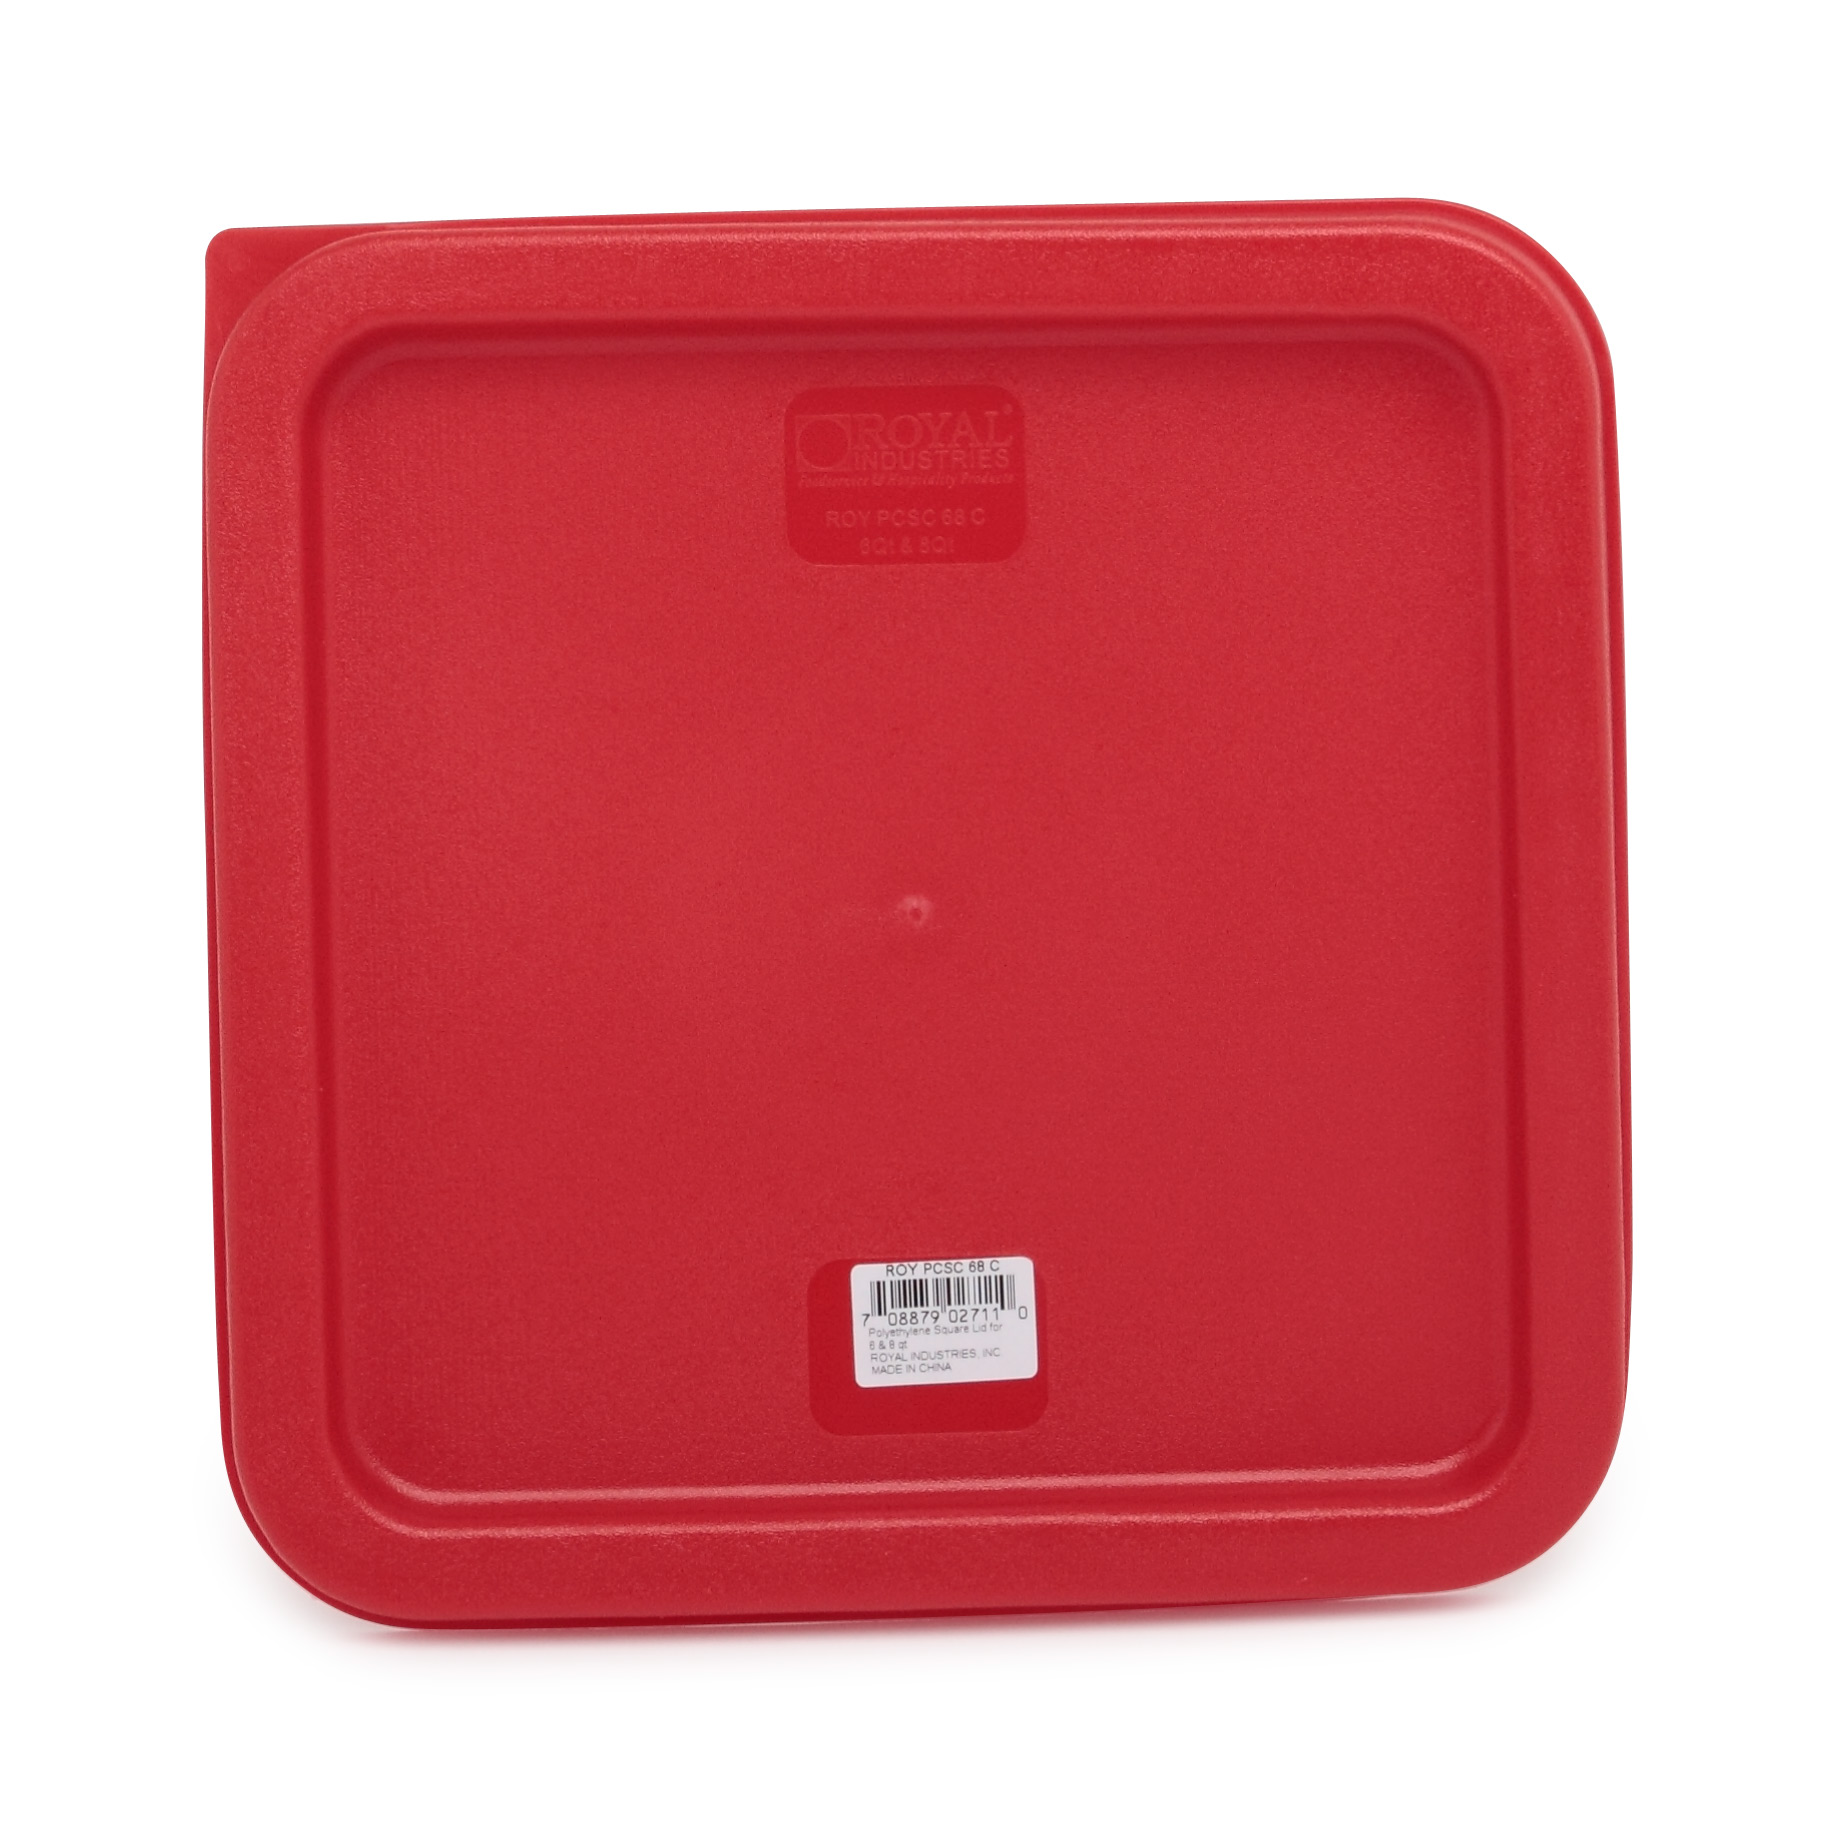 Royal Industries ROY PCSC 68 C food storage container cover